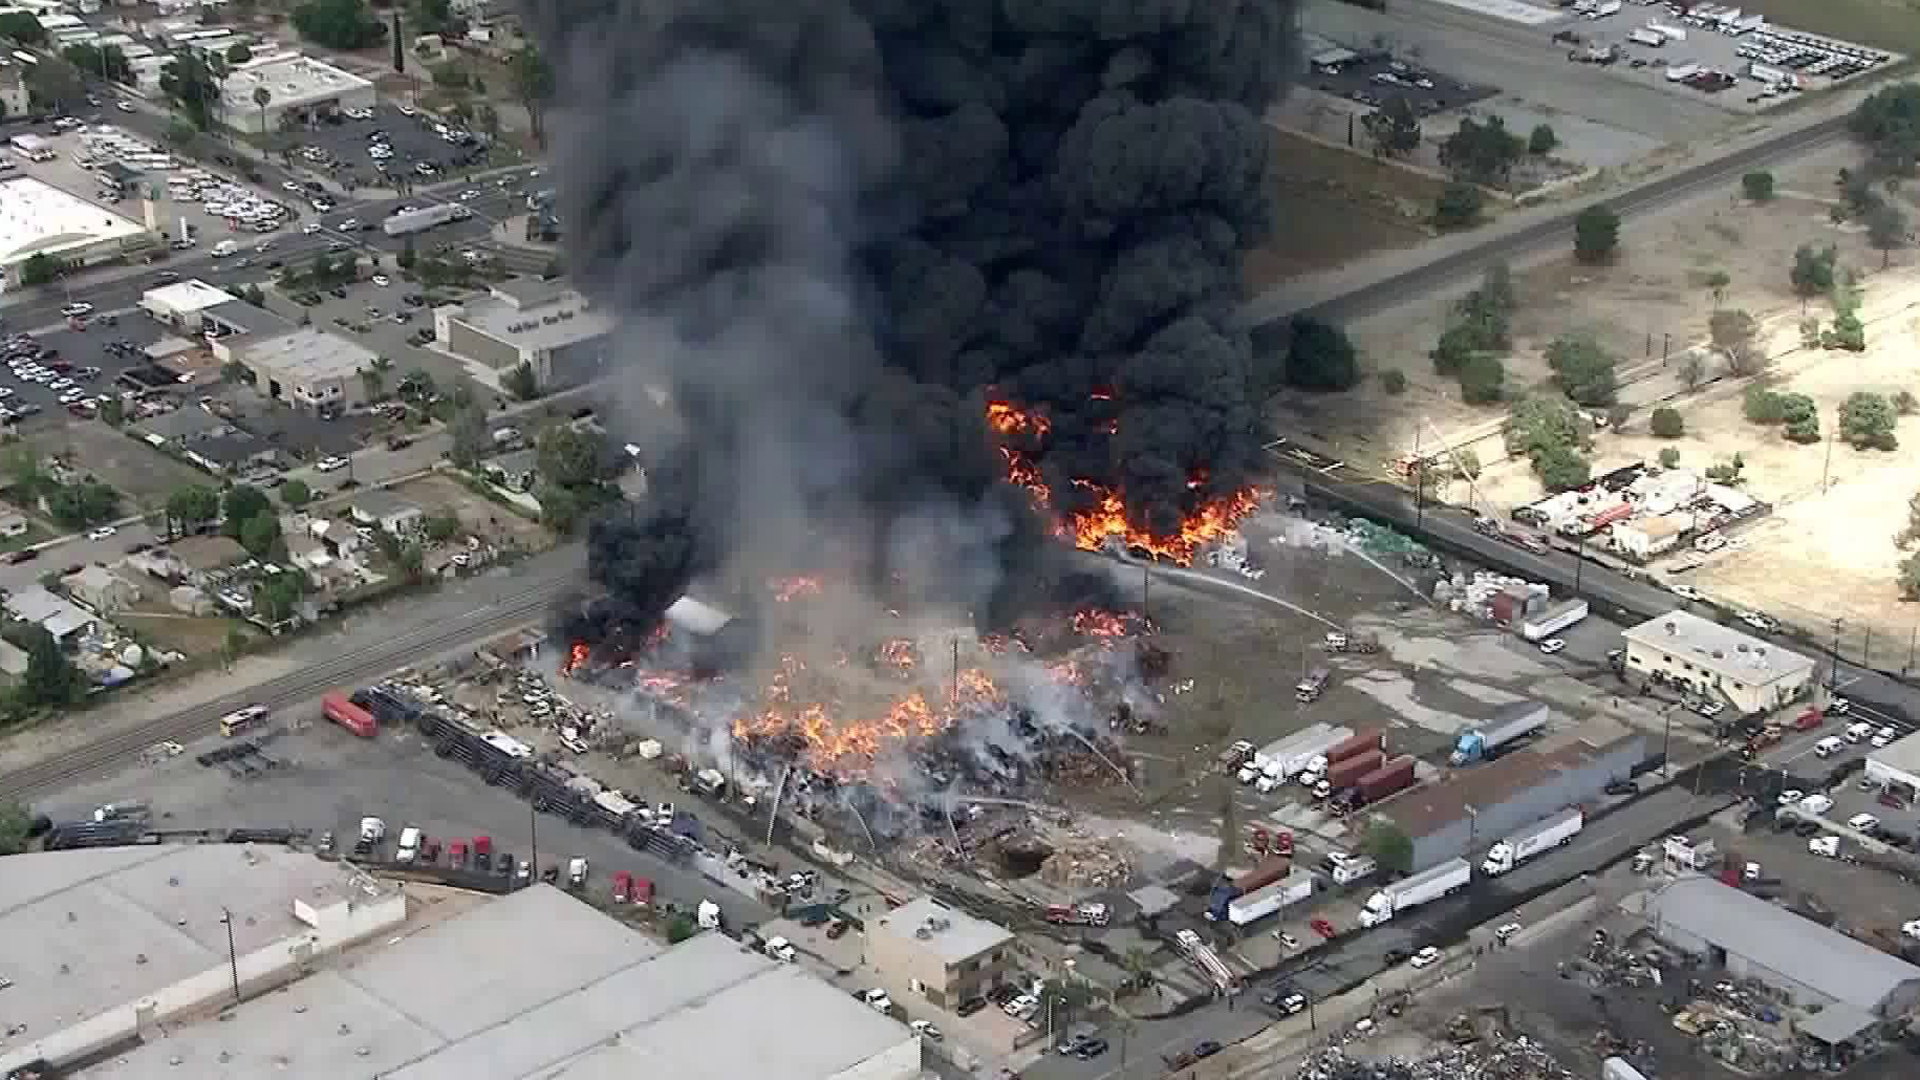 Firefighters battle a blaze at a recycling facility in Ontario on April 30, 2019. (Credit: KTLA)